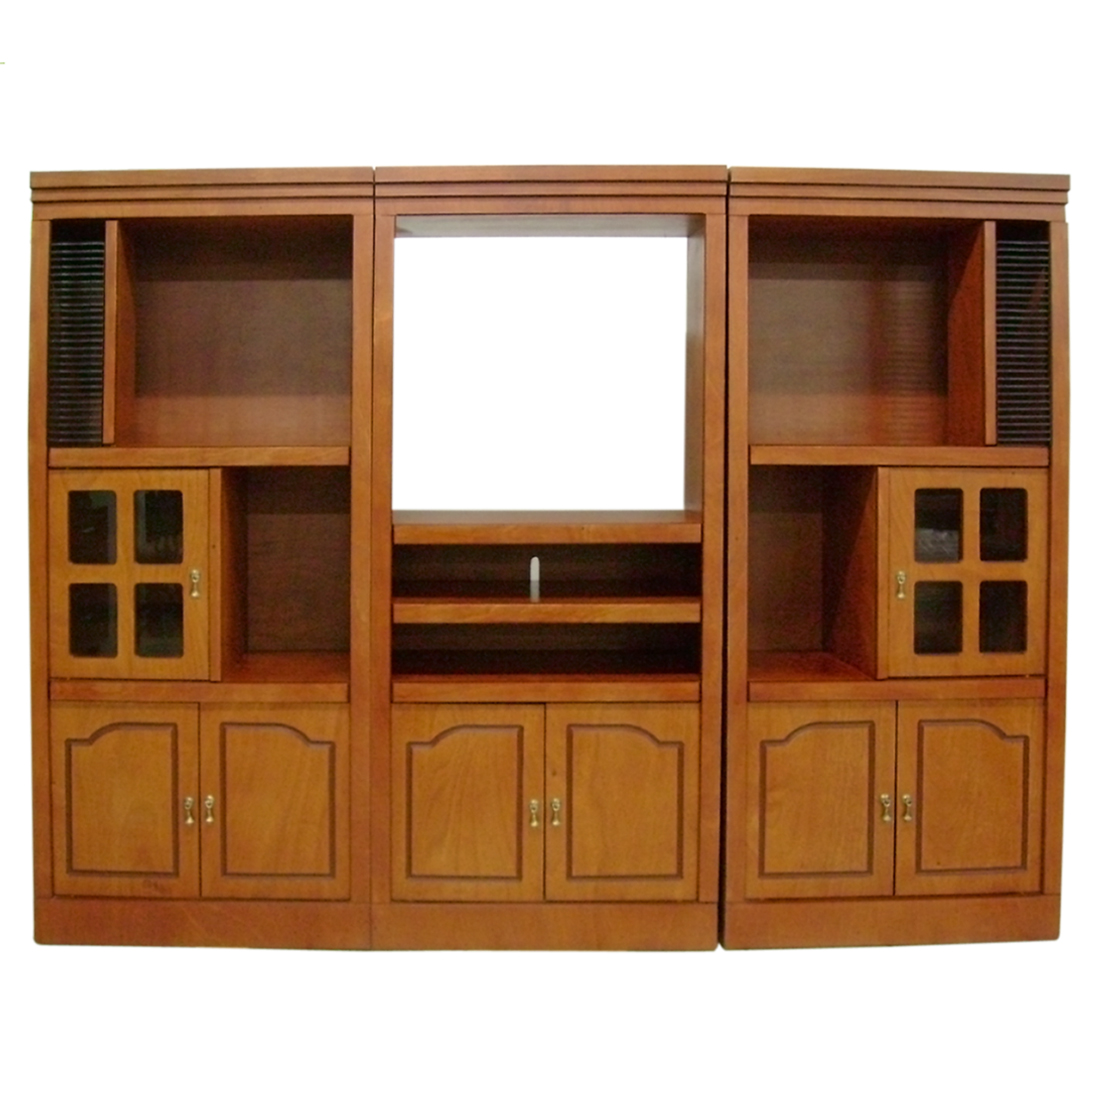 Ebaninsaindustrial s a muebles empostrados for Muebles para cds madera